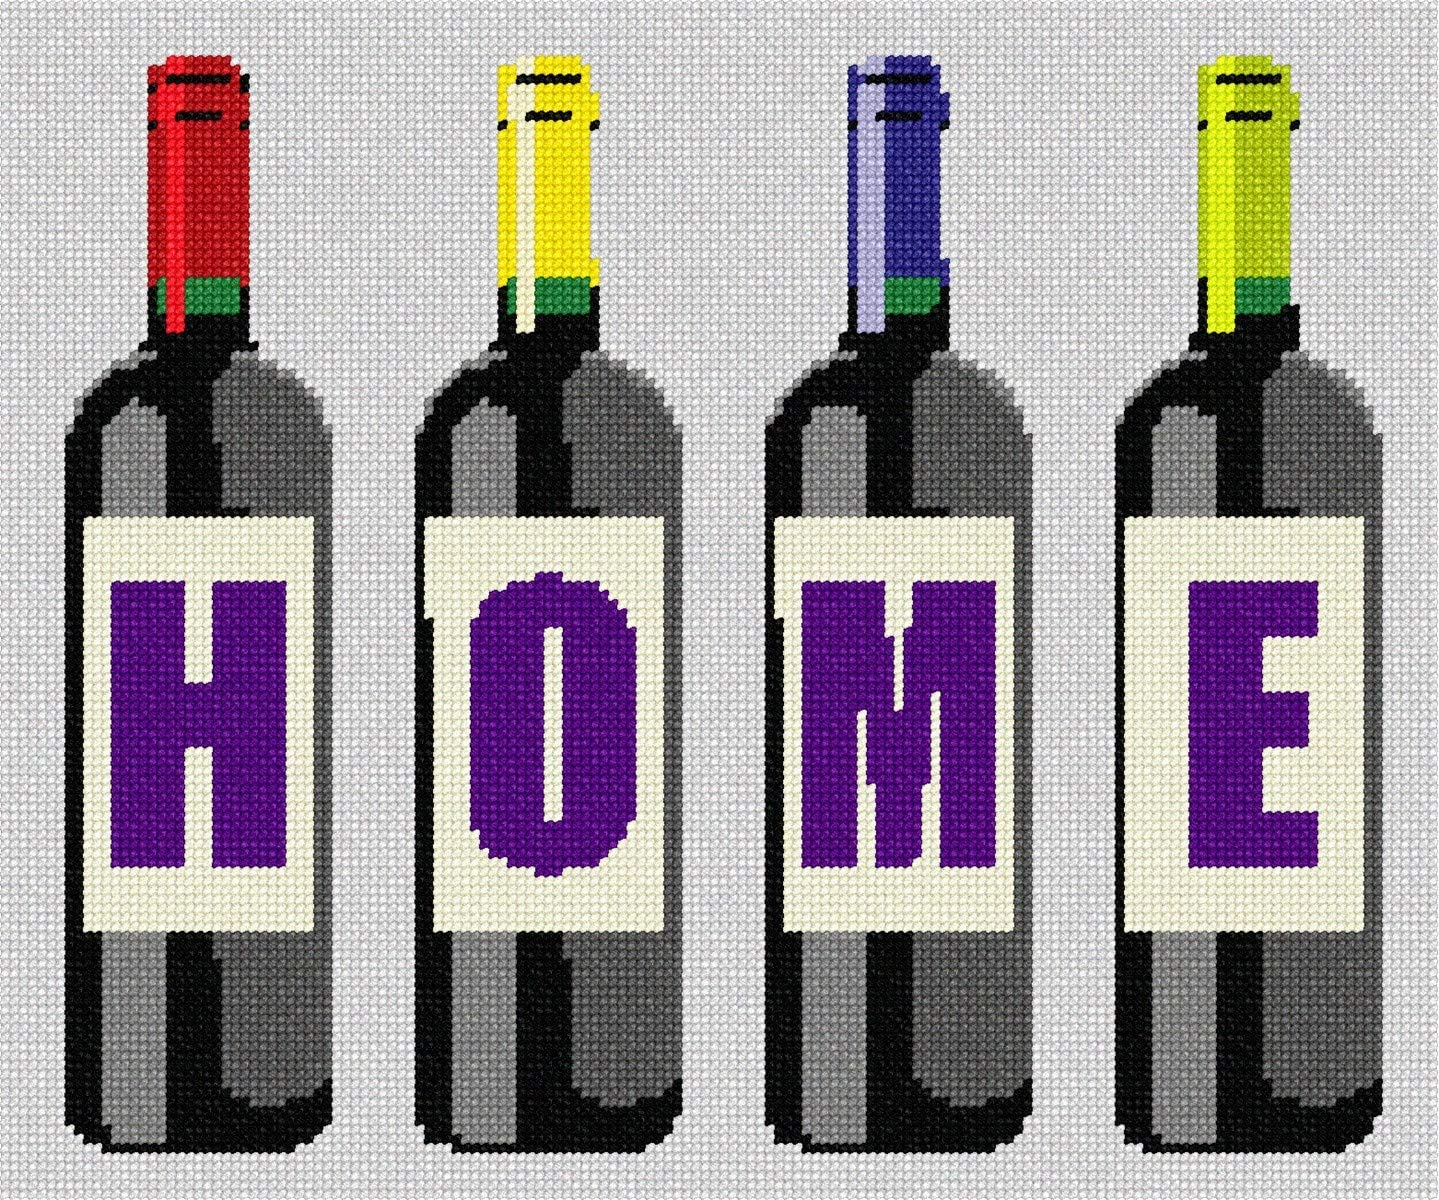 pepita Home Wine Bottles Needlepoint Kit